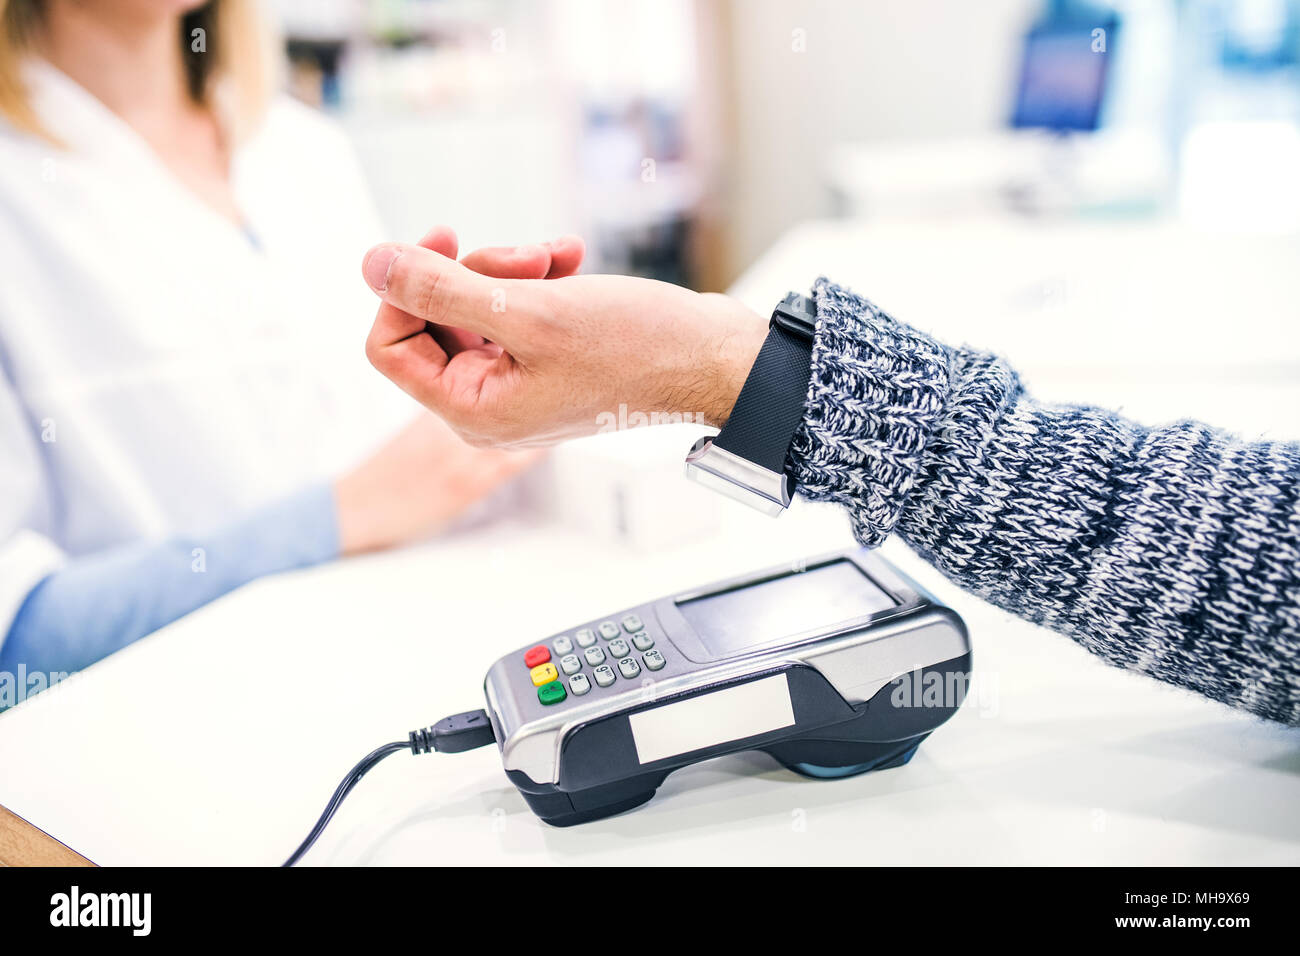 A customer making wireless or contactless payment using smartwatch. - Stock Image